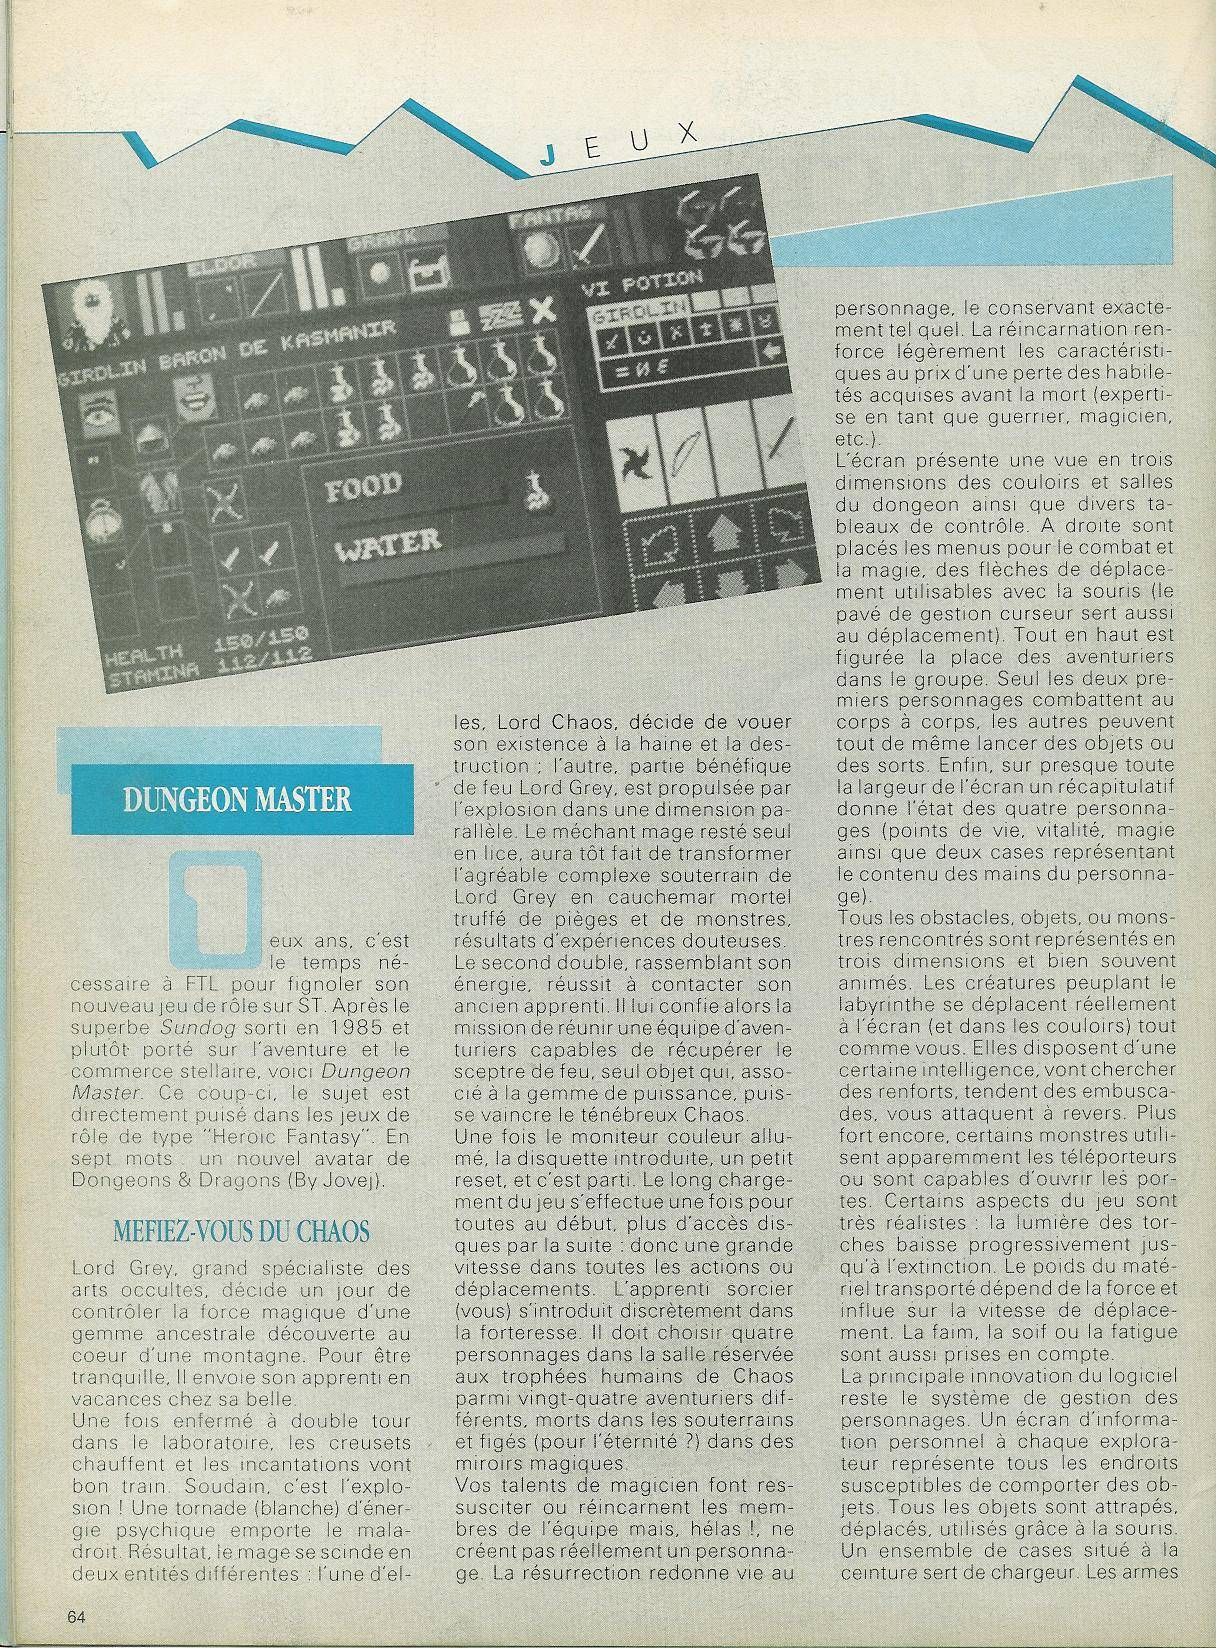 Dungeon Master for Atari ST Review published in French magazine 'Atari 1ST', Issue #8, April 1988, Page 64